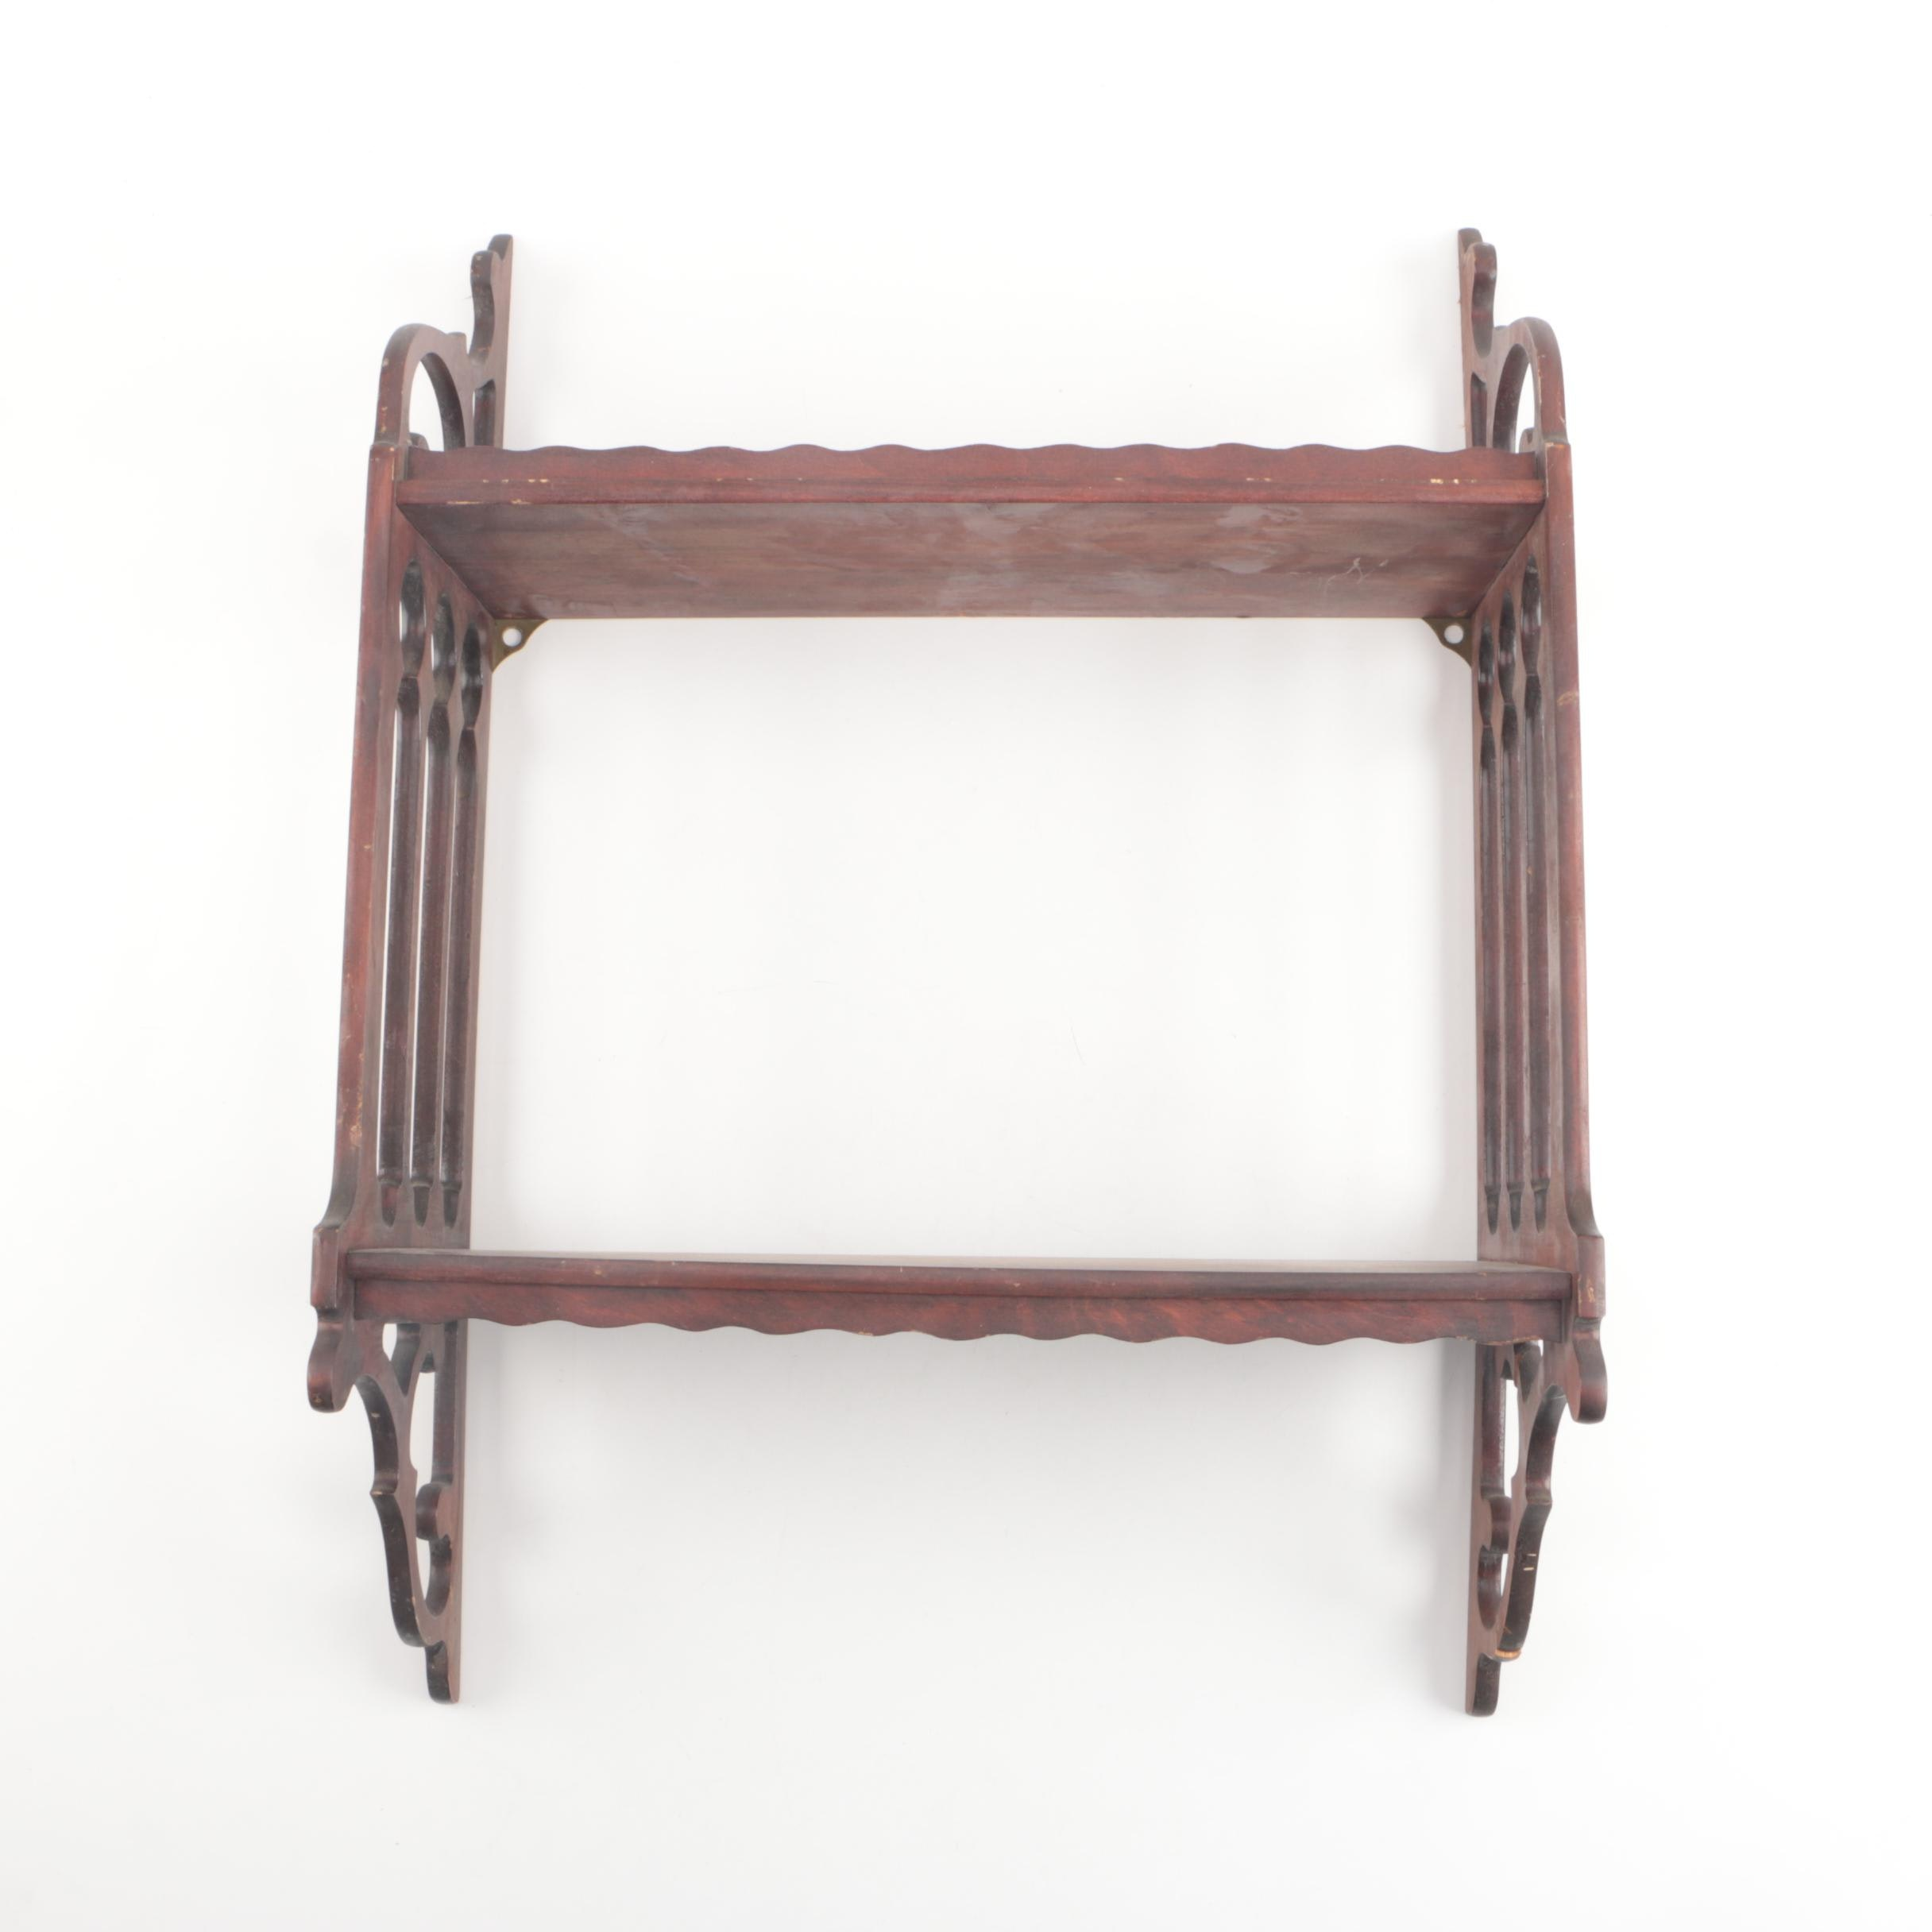 Vintage Two-Tiered Wooden Wall Shelf